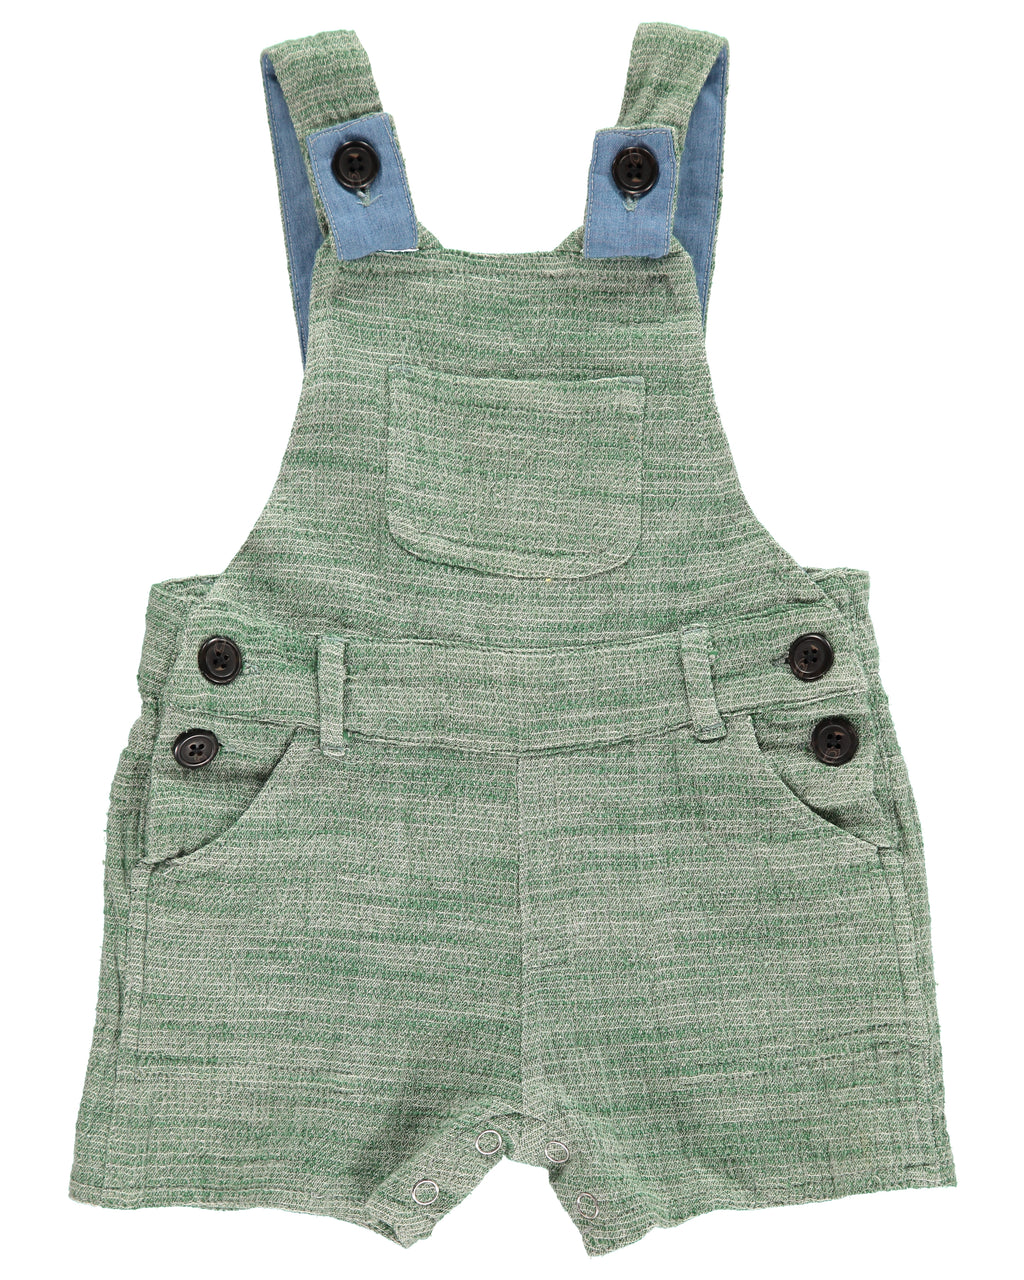 Green Shortie Overall